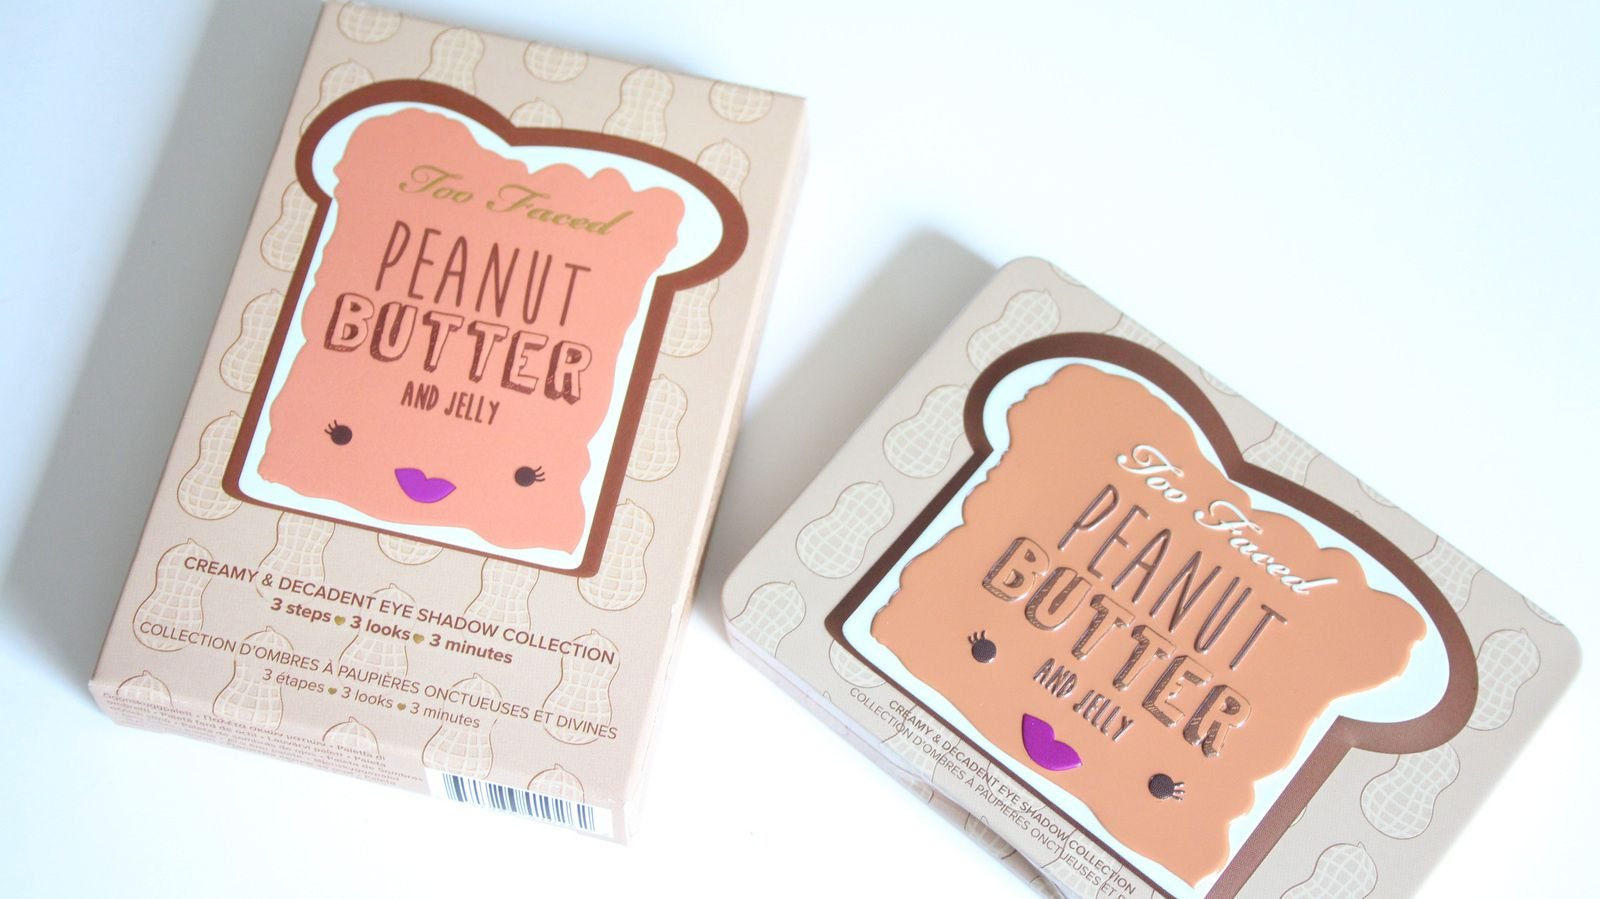 Too Faced Peanut Butter and Jelly Palette REVIEW/SWATCHES